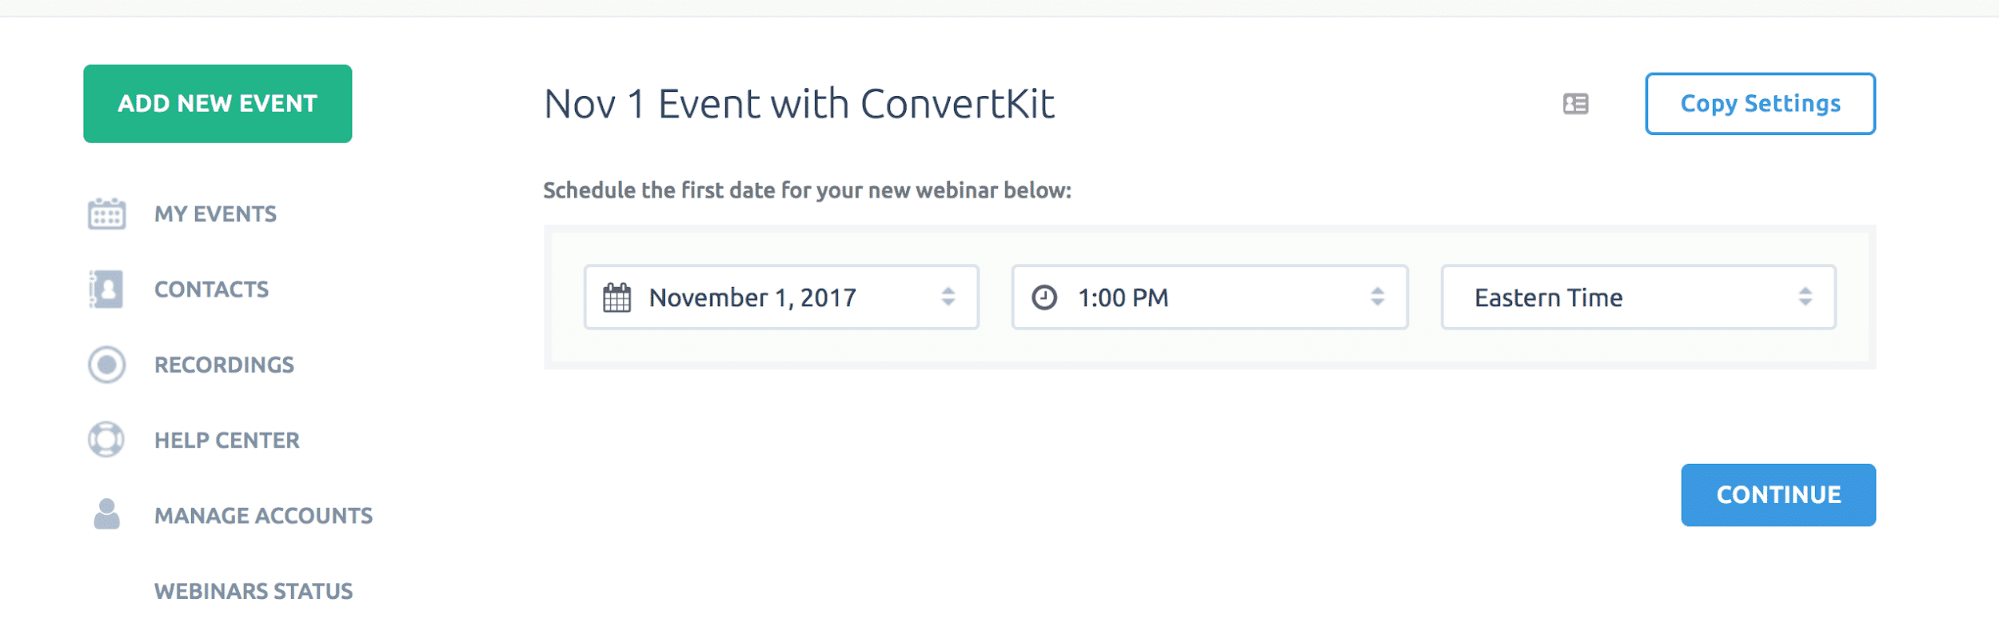 Adding an event on ConvertKit